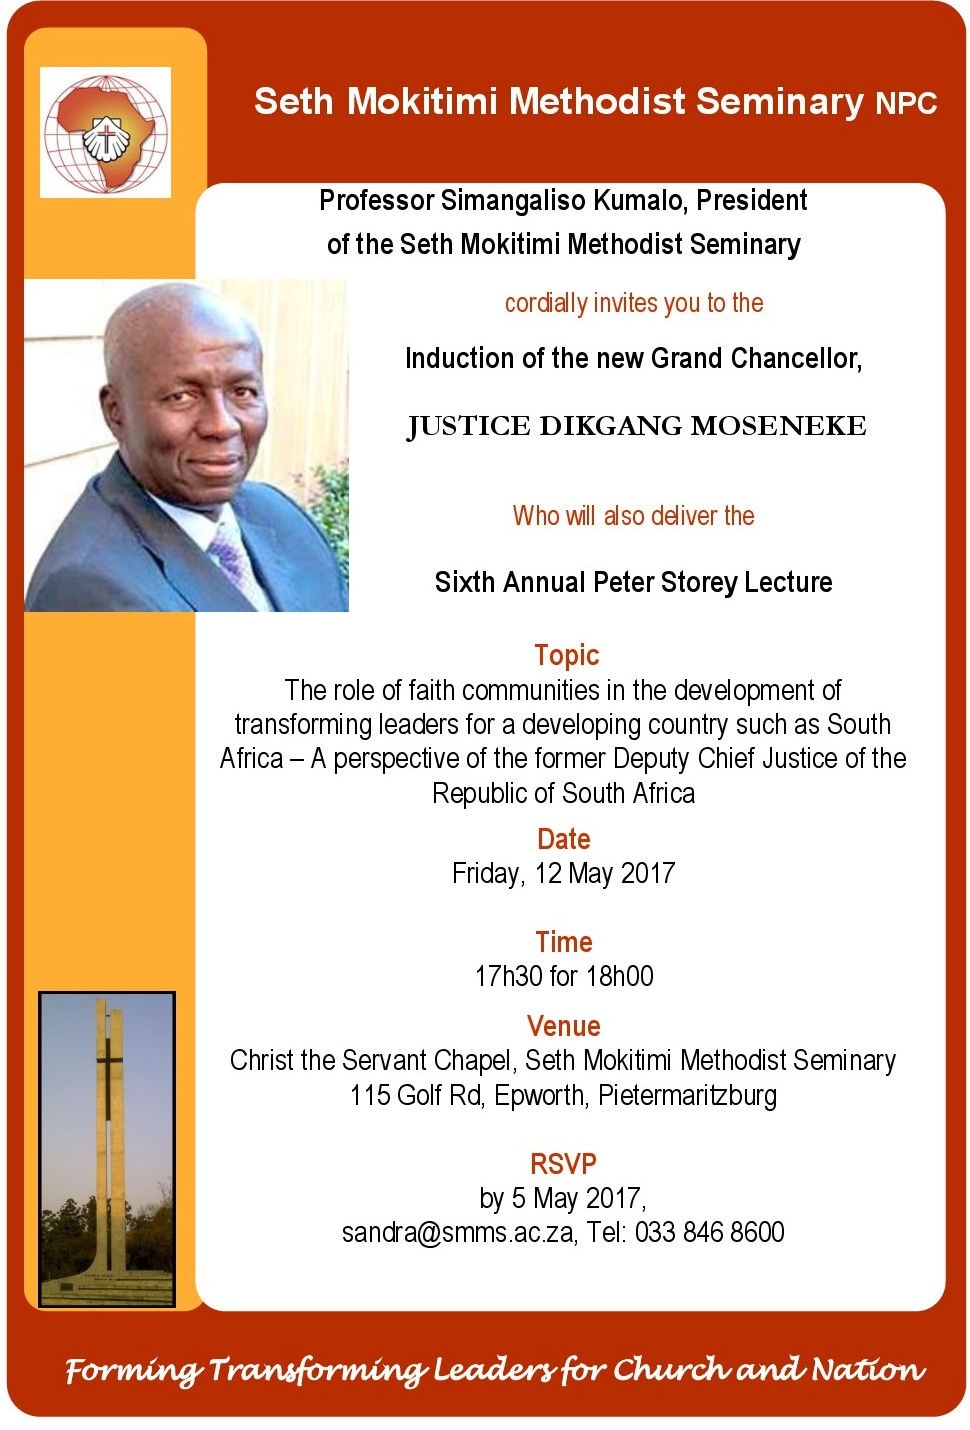 INVITATION TO INDUCTION OF JUSTICE DIKGANG MOSENEKE AS NEW GRAND CHANCELLOR AND ANNUAL PETER STOREY LECTURE